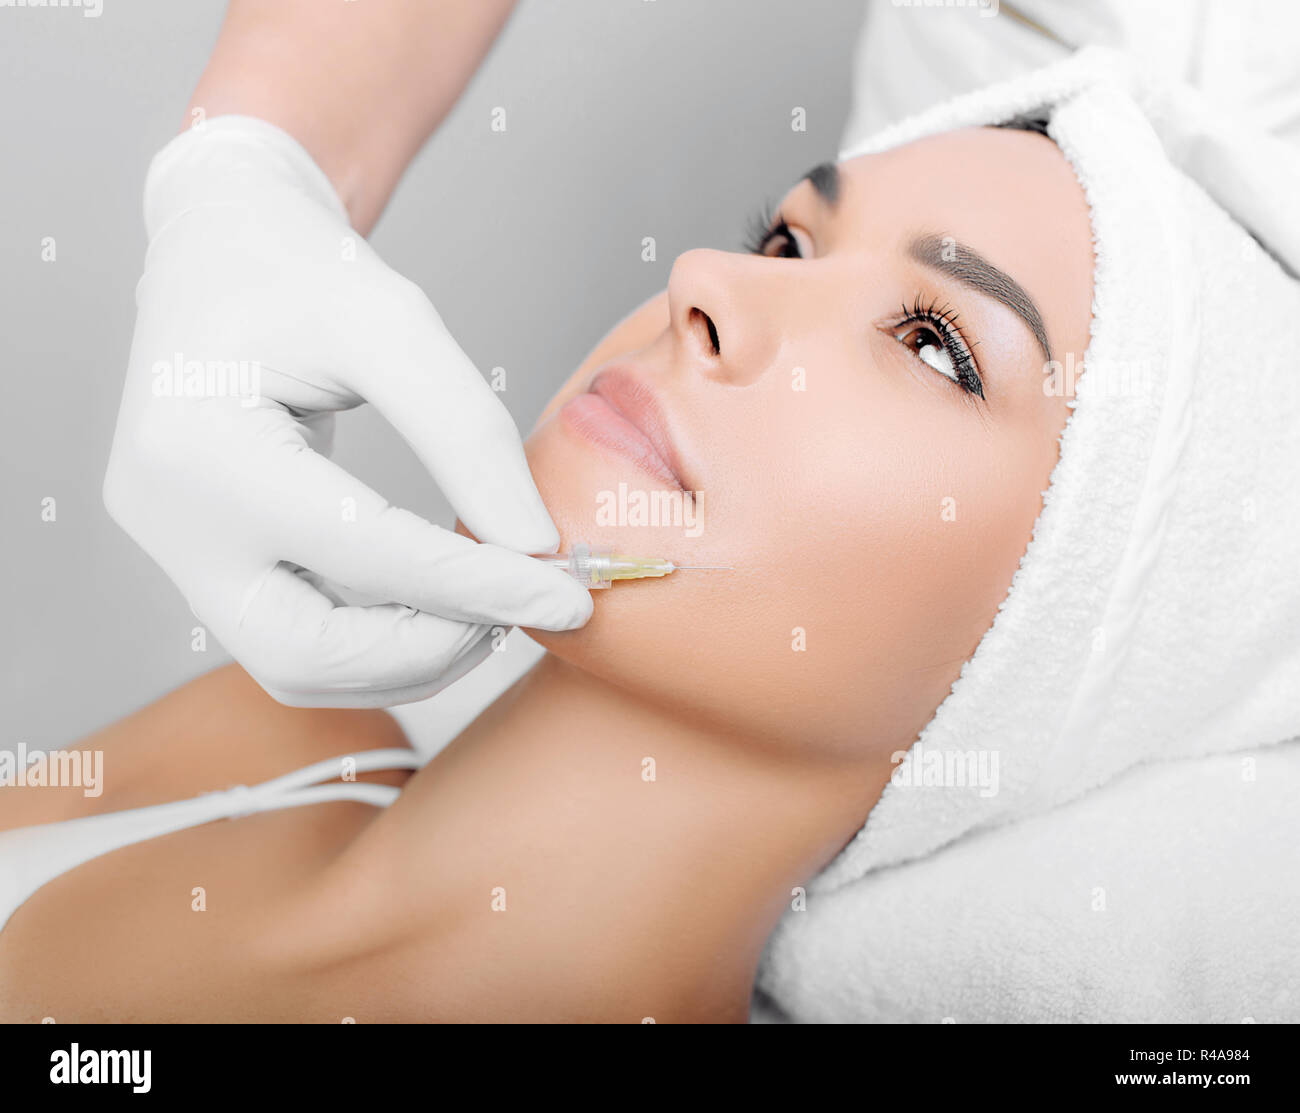 woman having facial injections for facelift and anti-aging effect Stock Photo